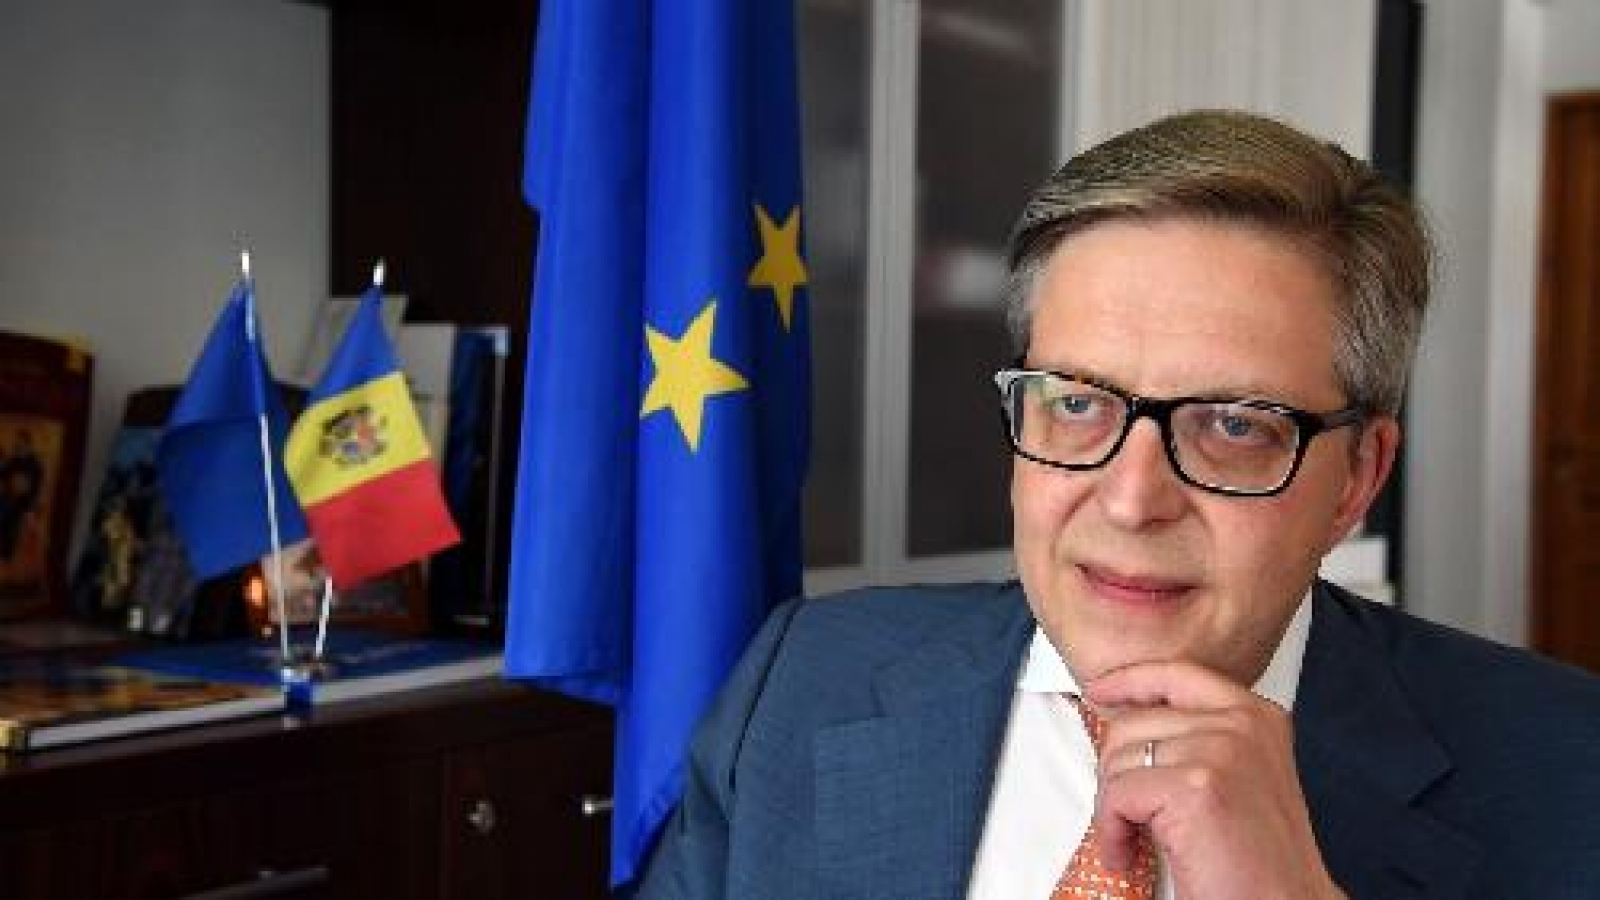 EU Ambassador to the Republic of Moldova Pirkka Tapiola explains in an interview the importance of turning shared values into an operational reality, while transforming society for a better life.